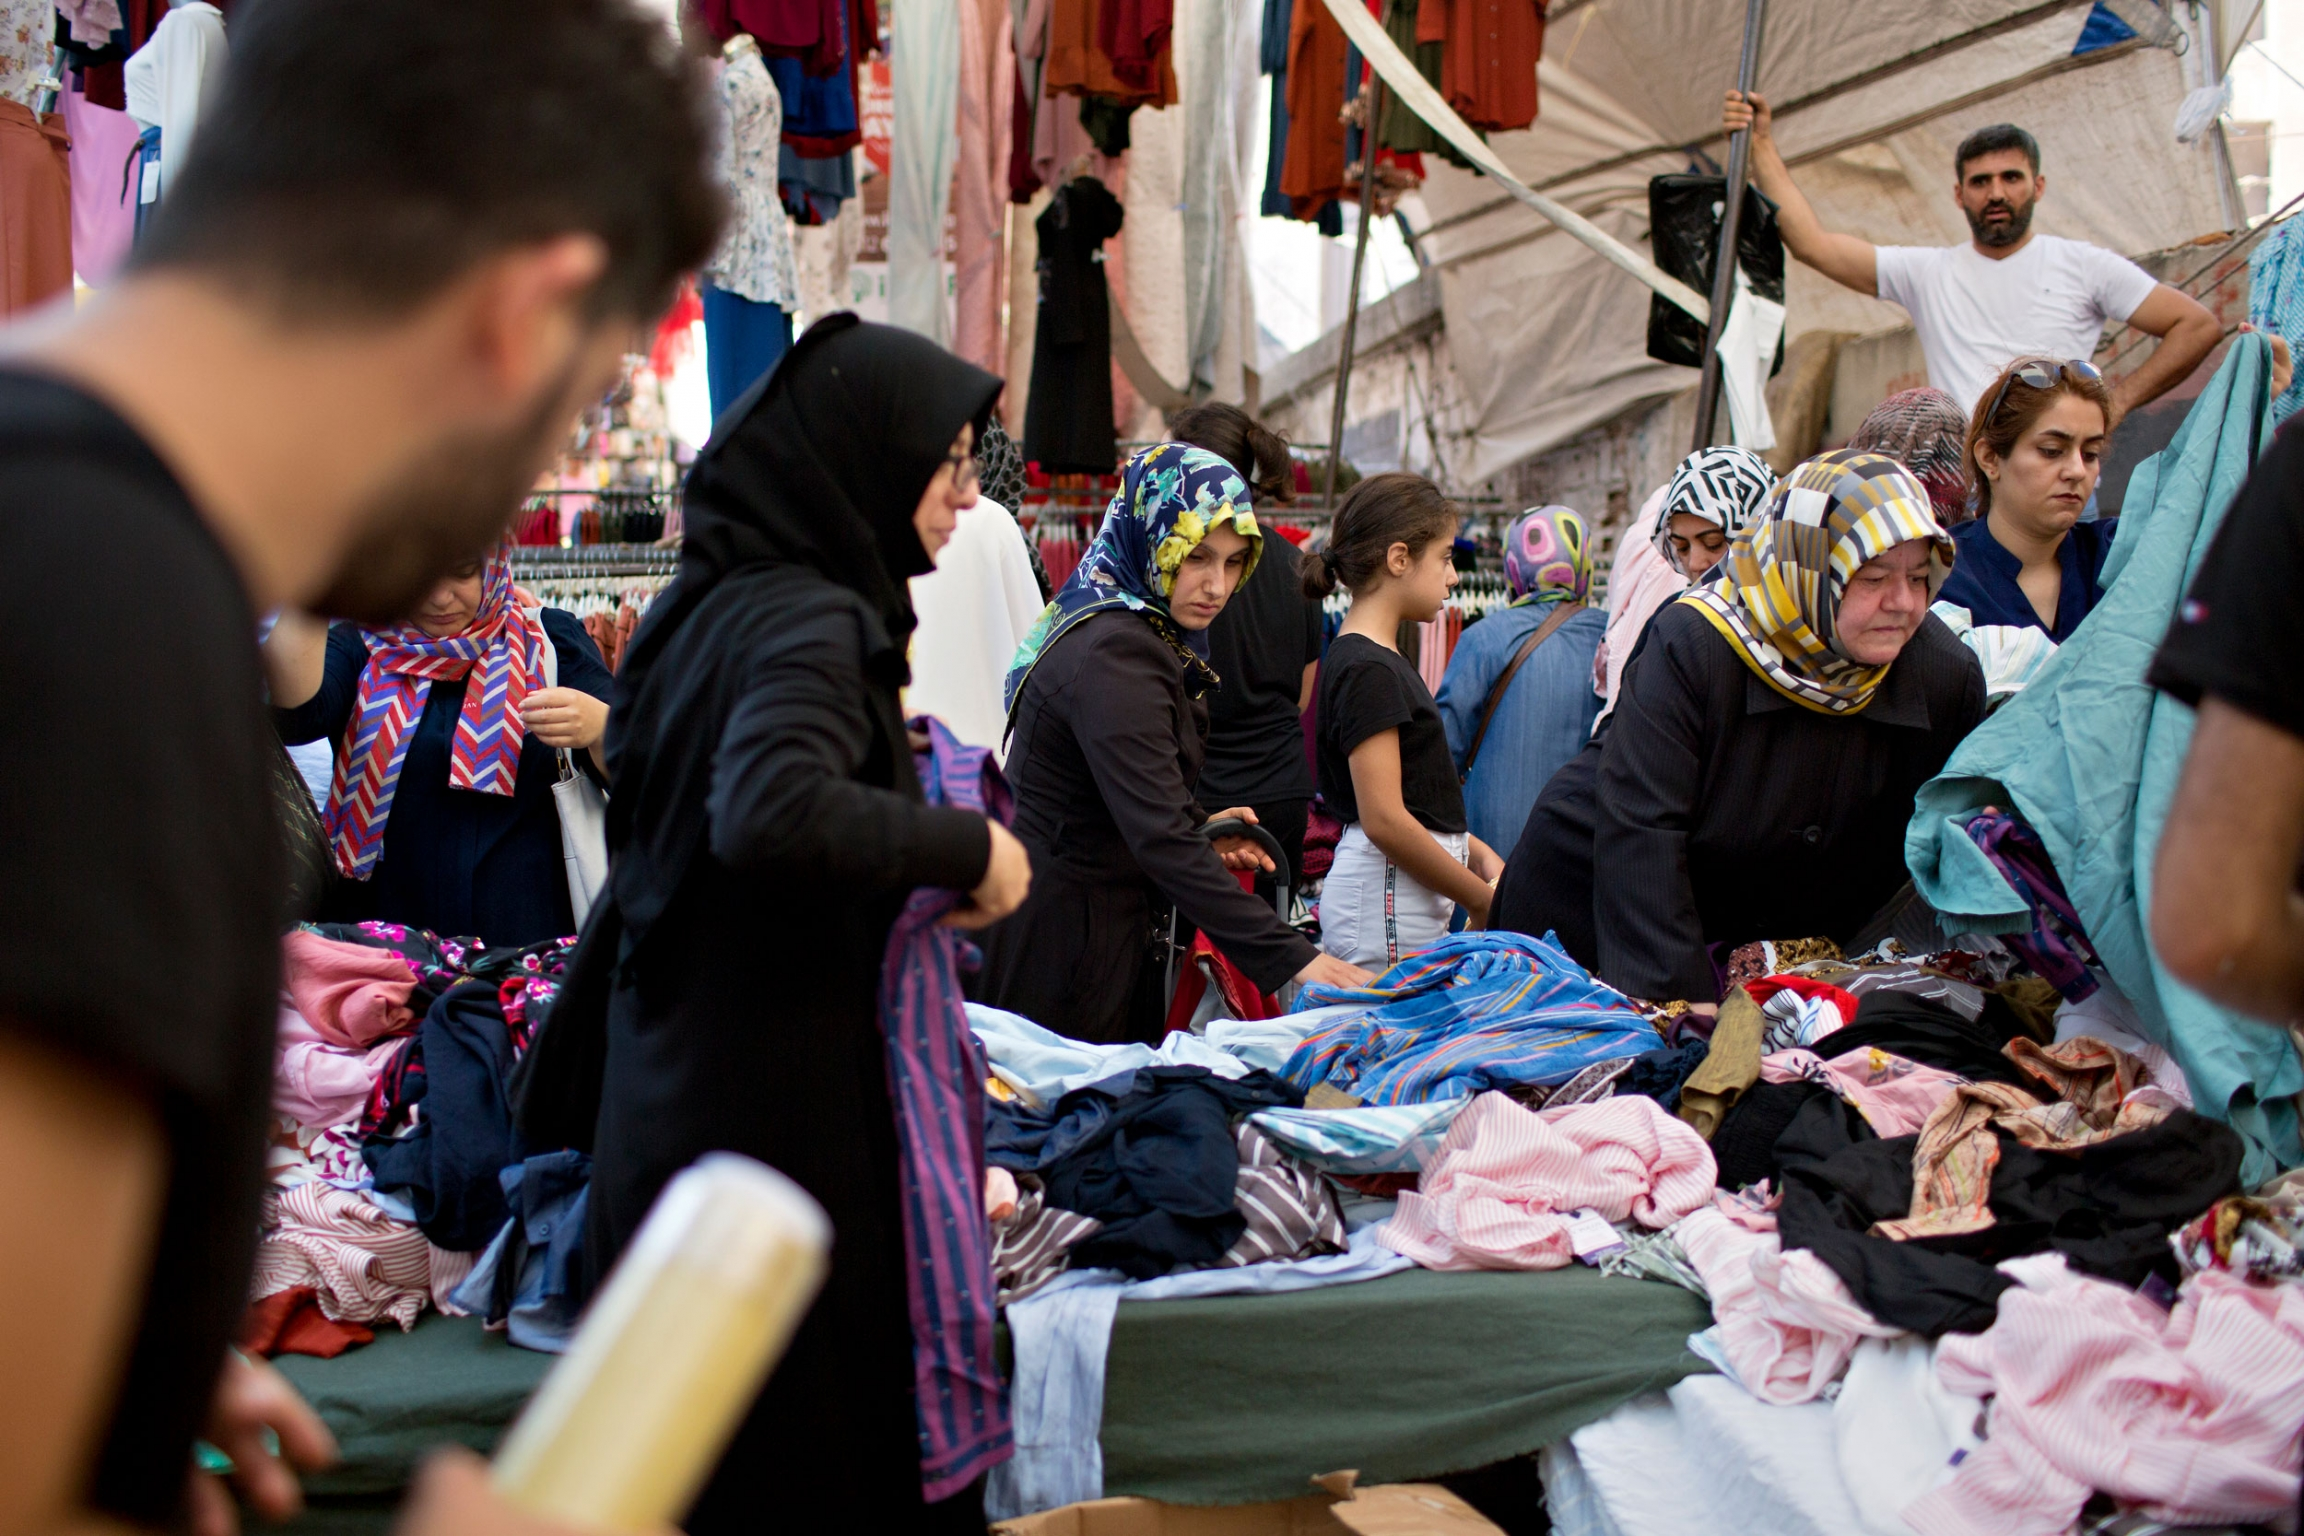 Several women wearing head shalls are show shopping at a market.